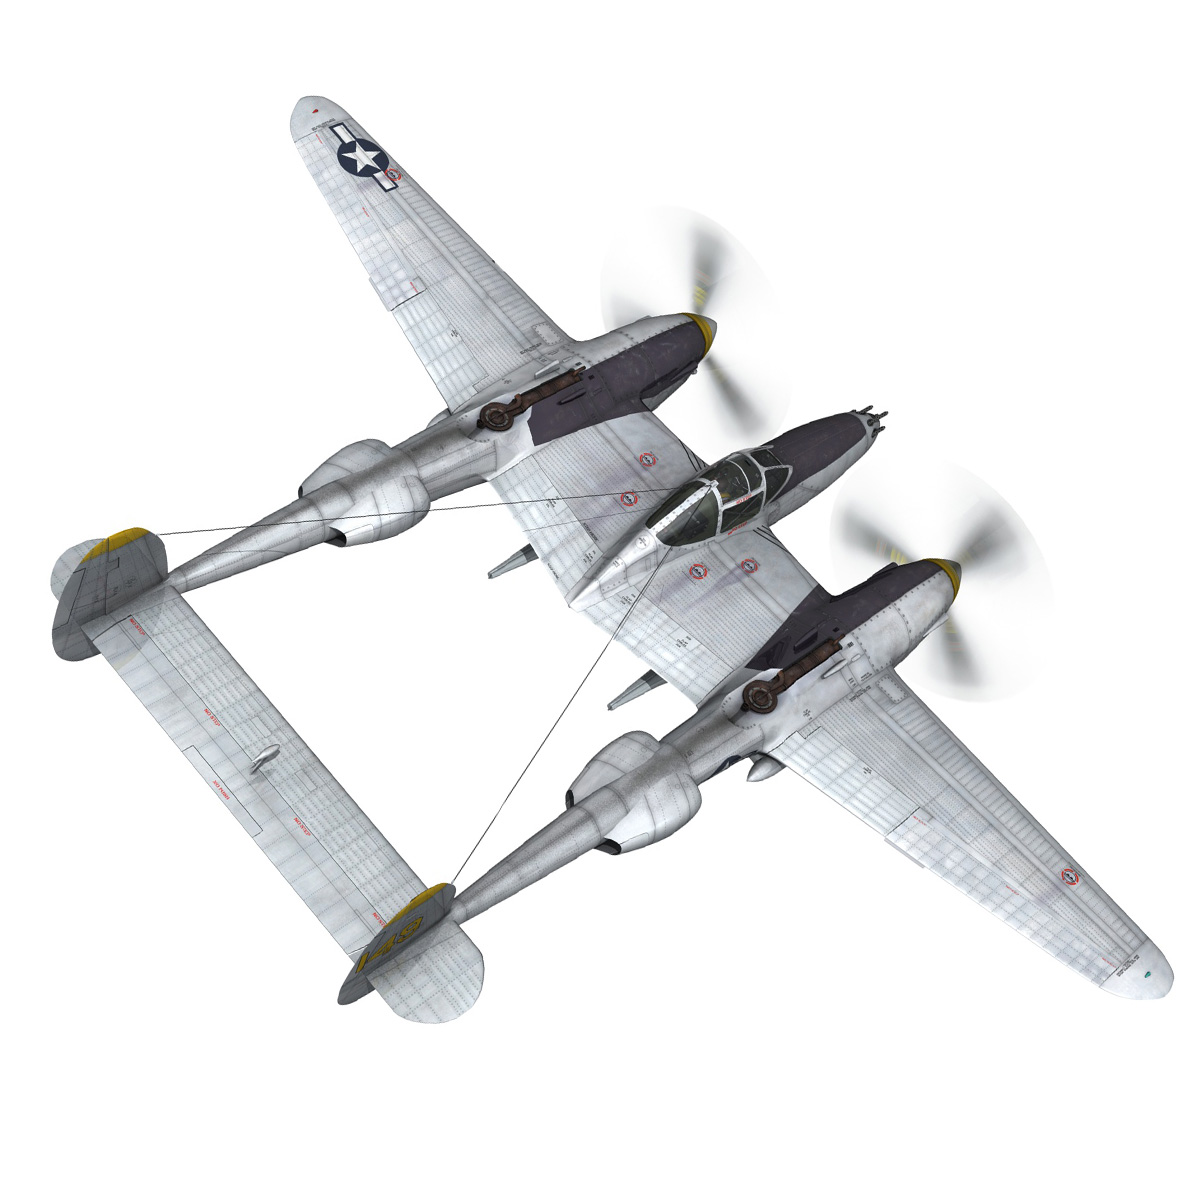 lockheed p-38 lightning – florida cracker 3d model fbx c4d lwo obj 279419